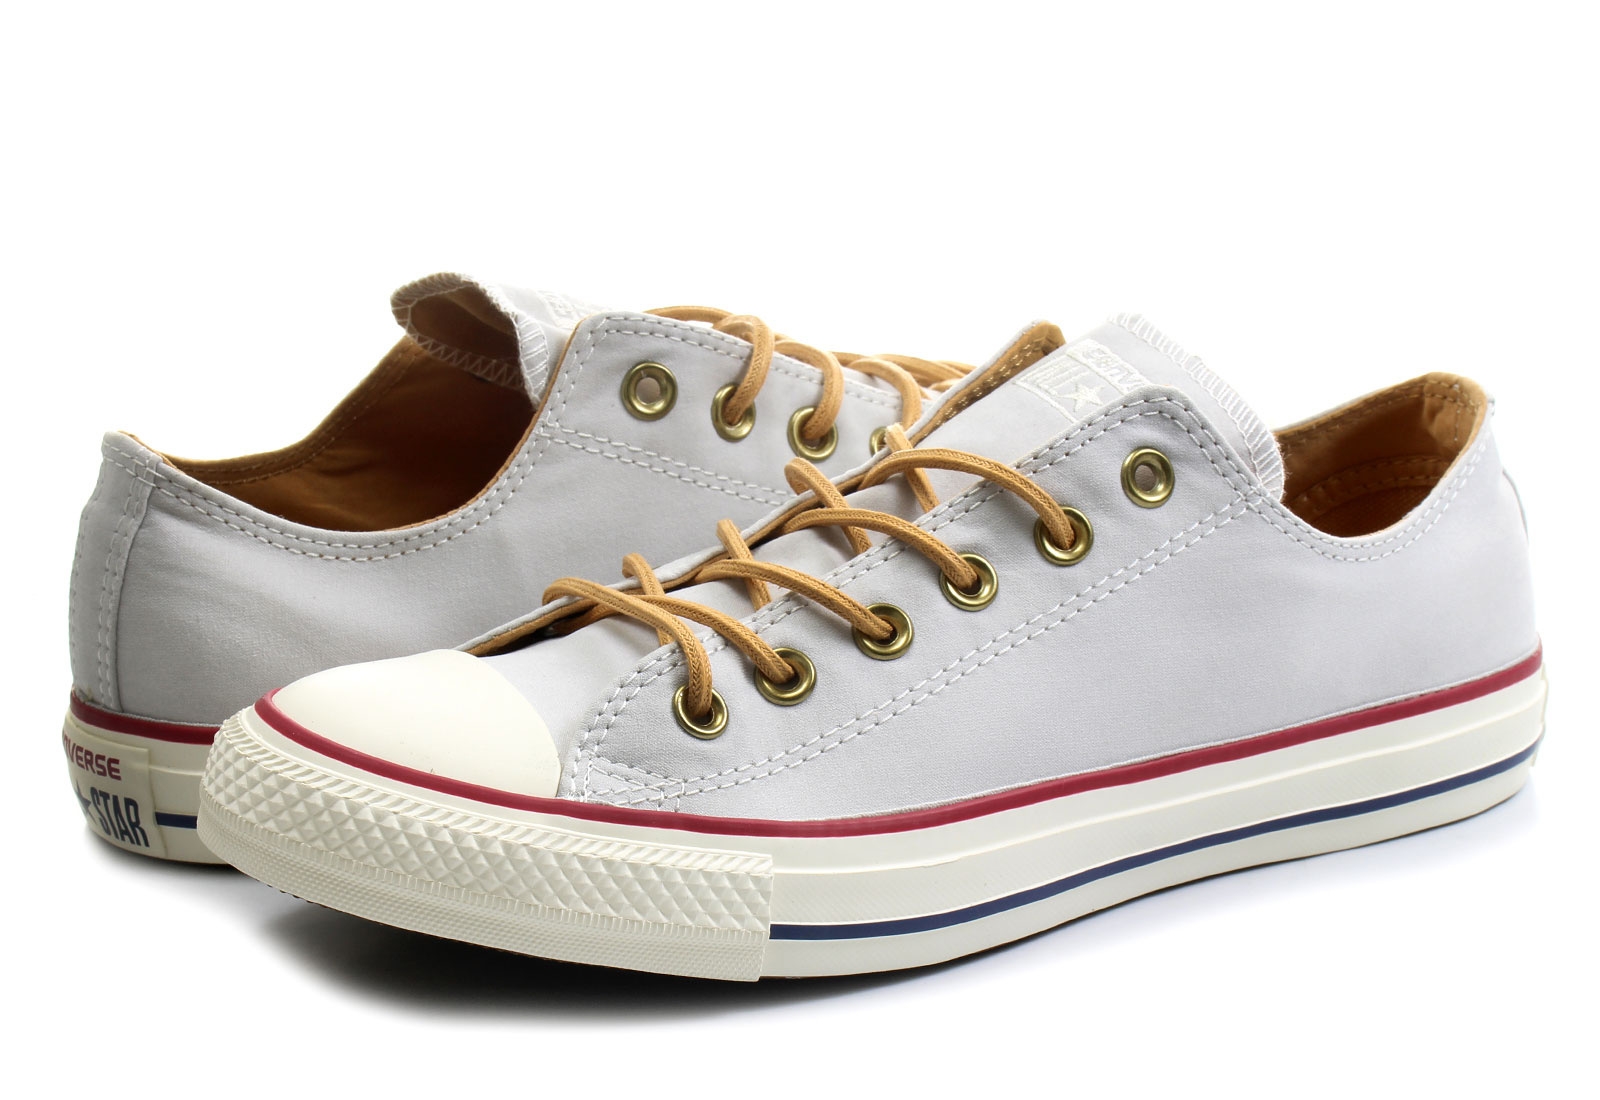 2a2e8647d6f82c Converse Sneakers - Chuck Taylor All Star Specialty Ox - 151144C ...